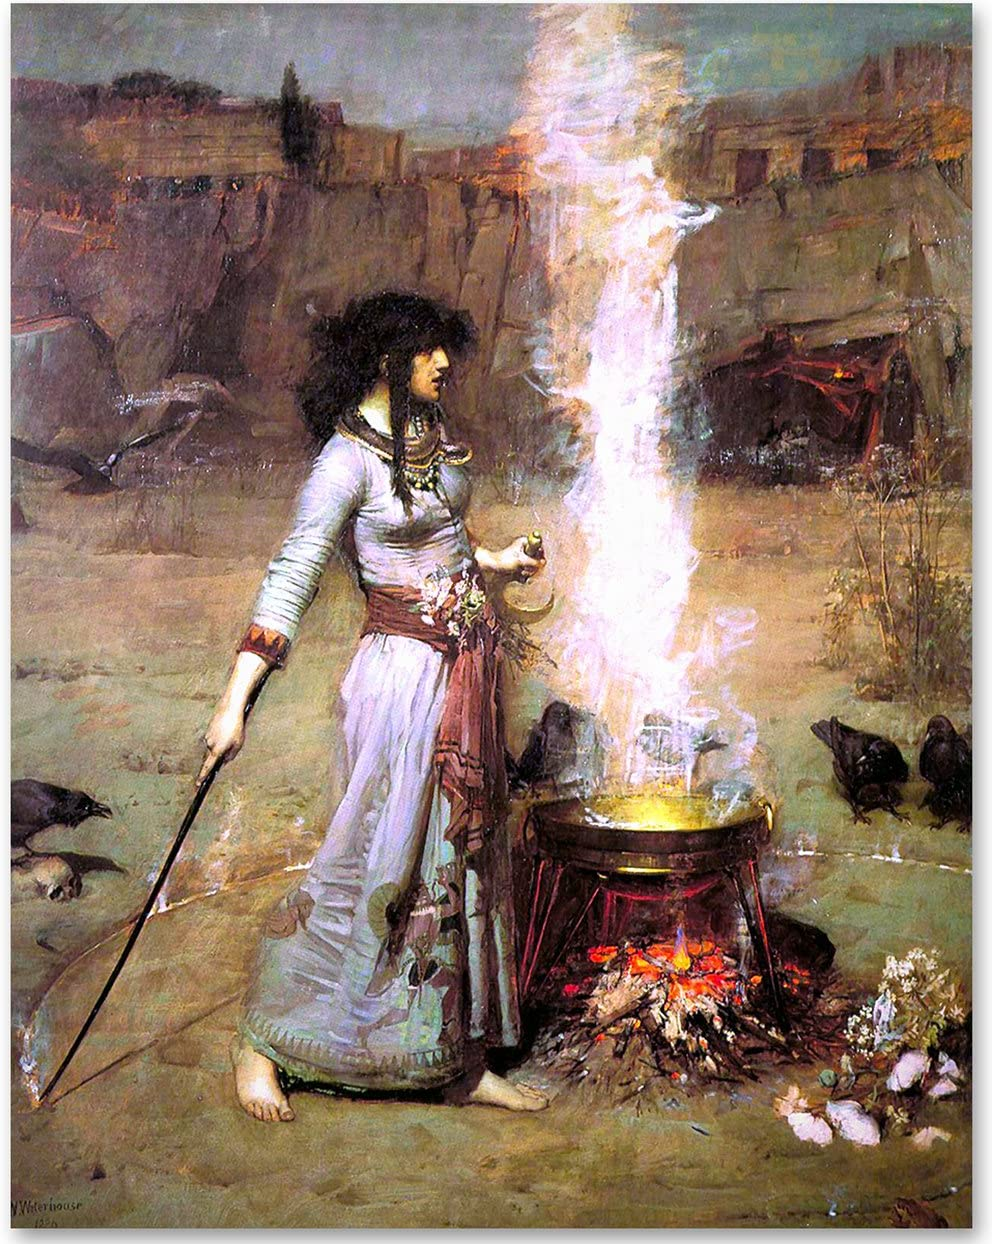 Magic Circle (The Witch) by John William Waterhouse - 11x14 Unframed Art Print - Makes a Great Gift Under $15 for Art Lovers…